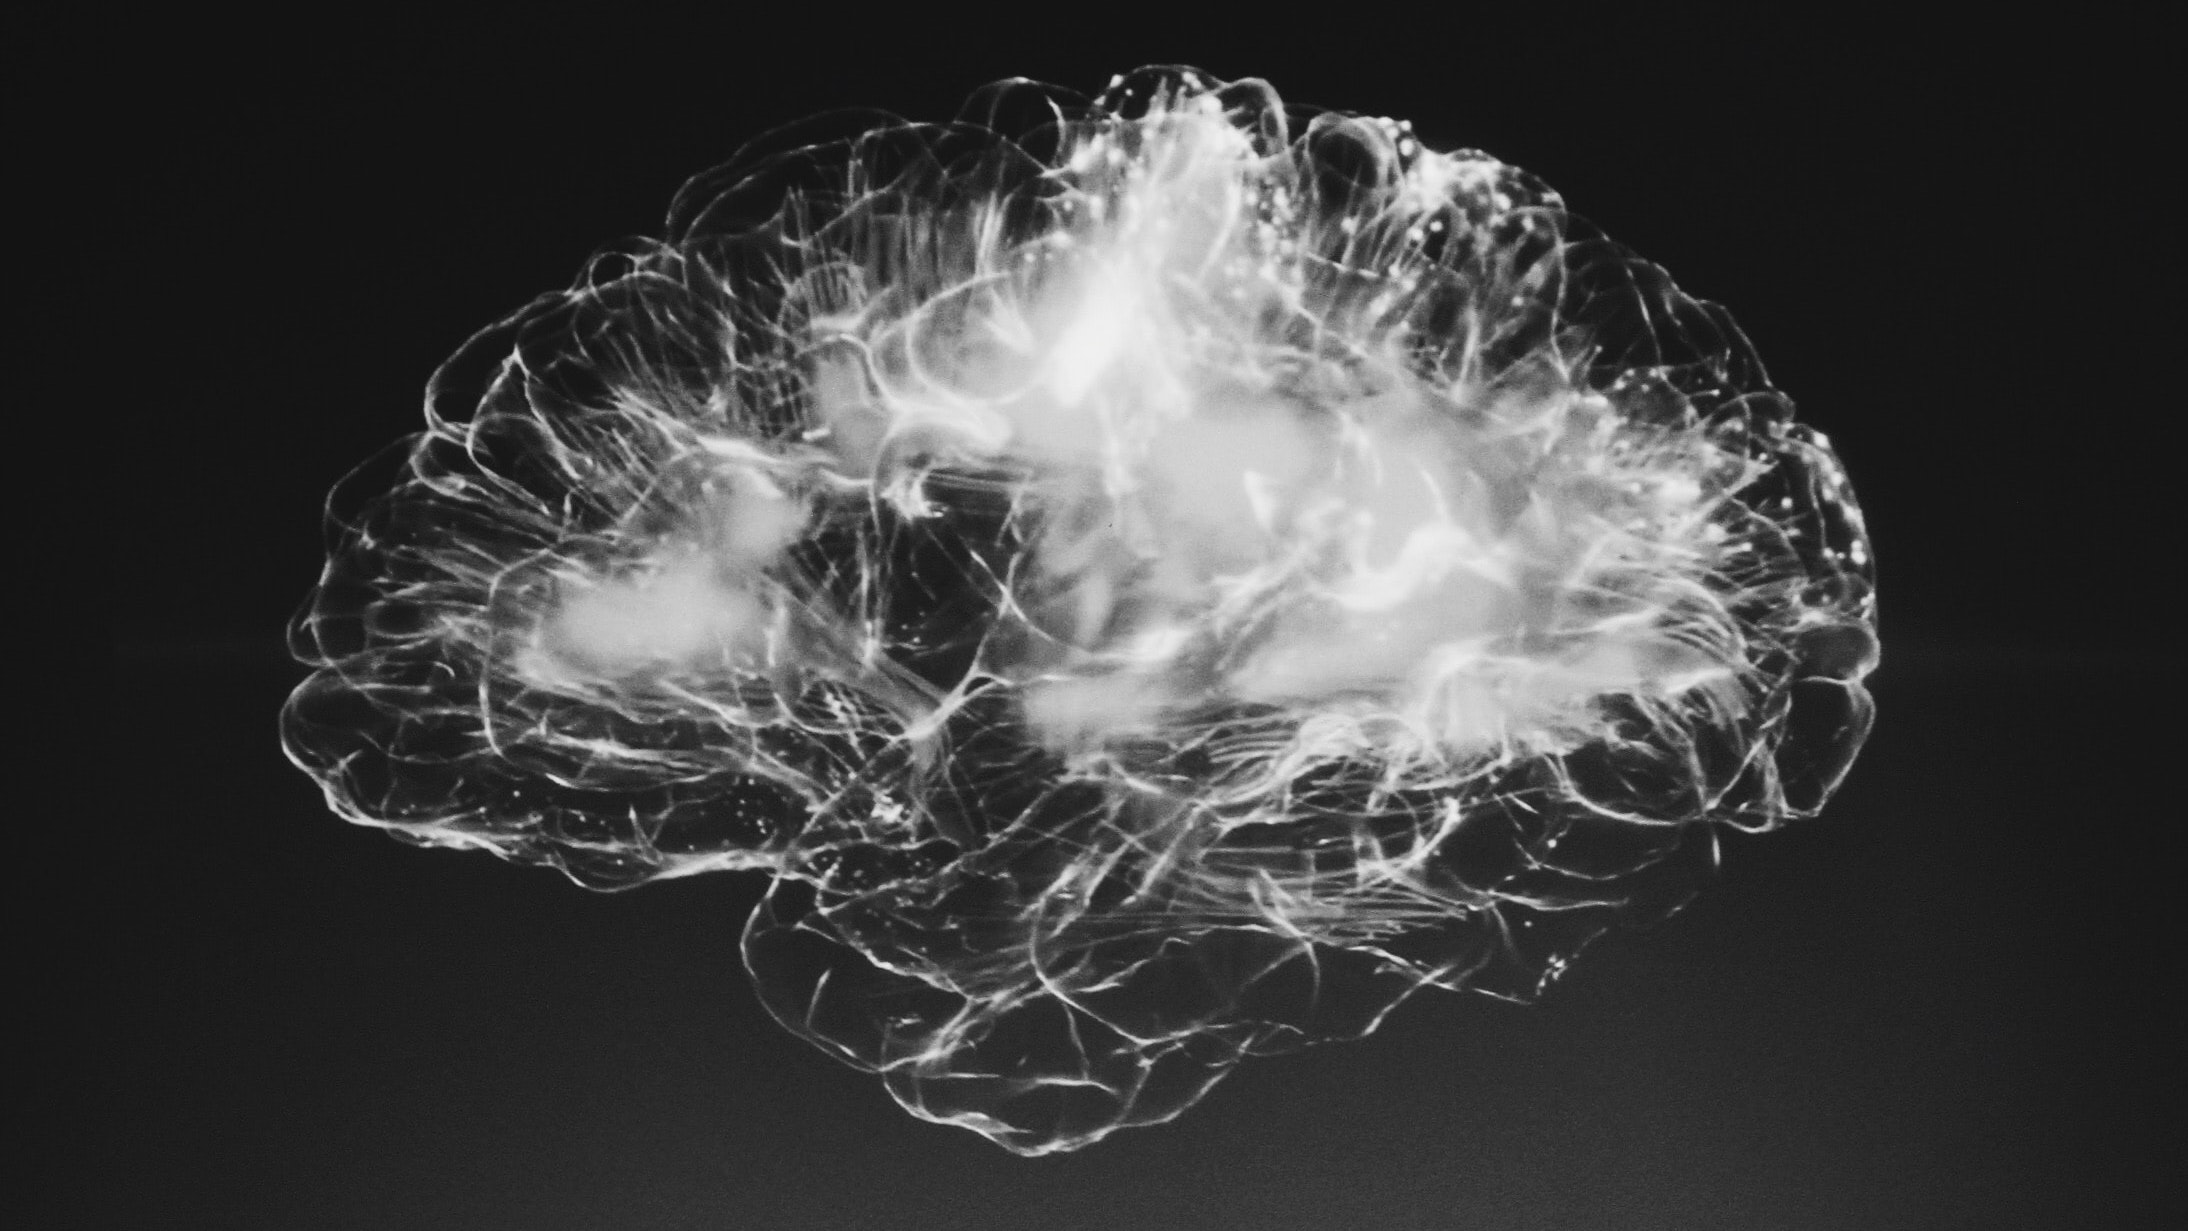 Visualisation of a brain